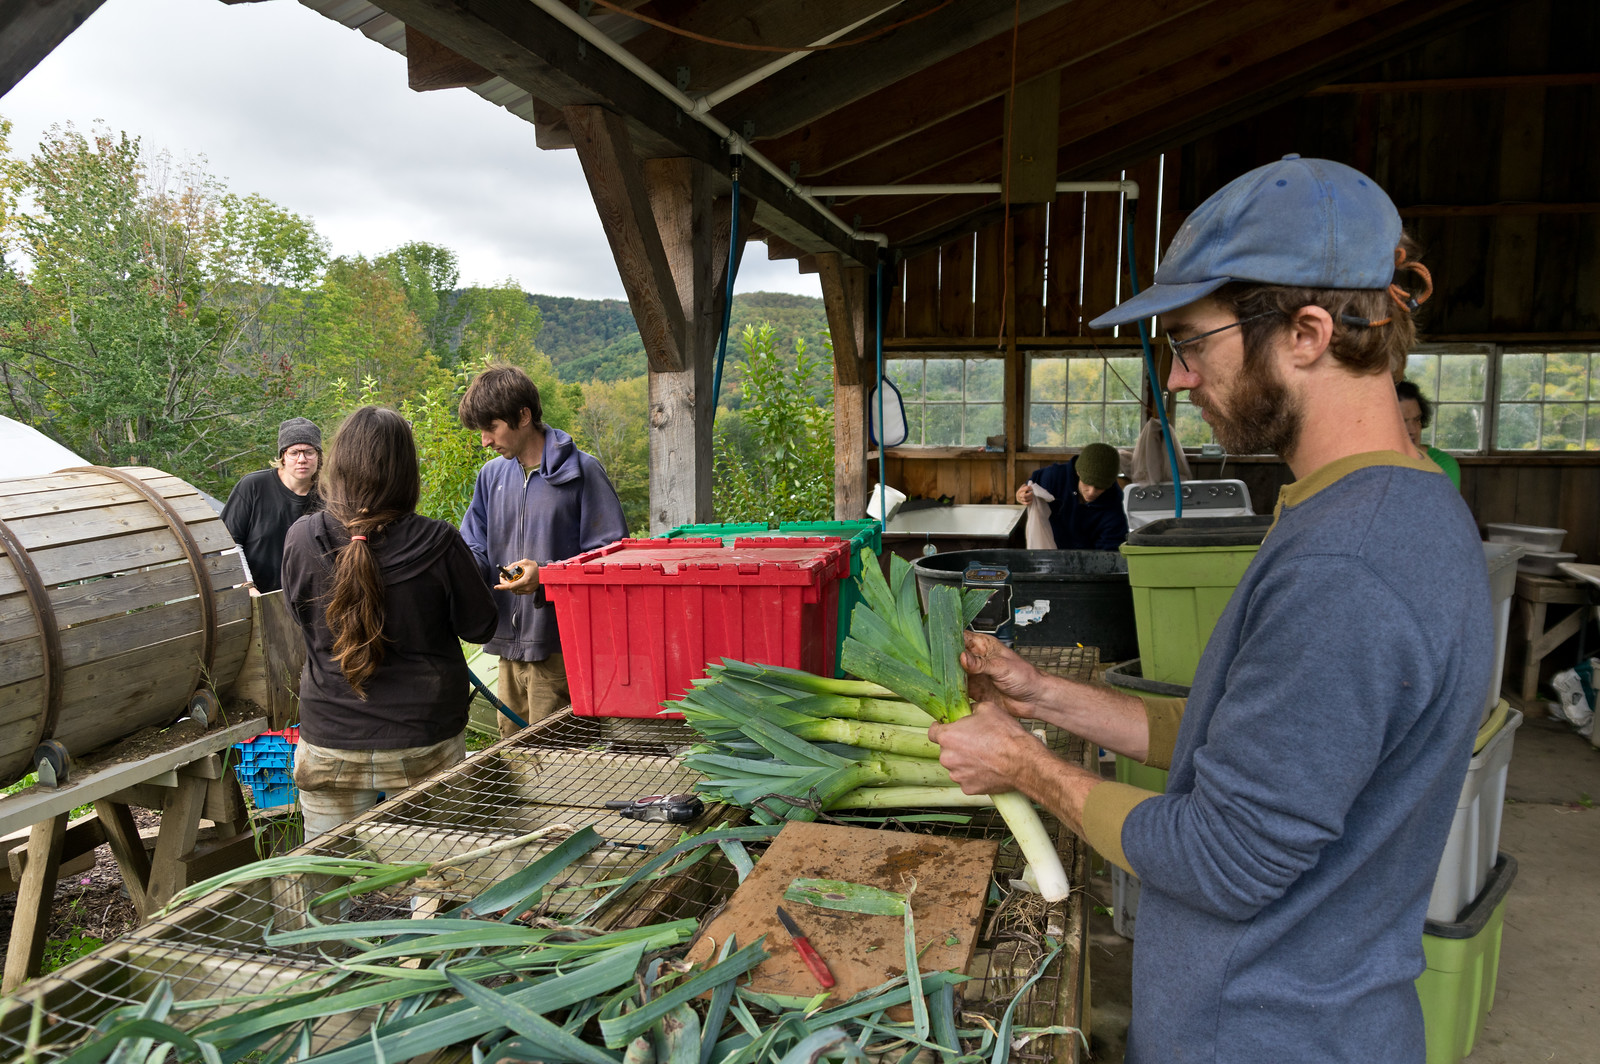 Peter cleaning leeks, photo by Adam Ford